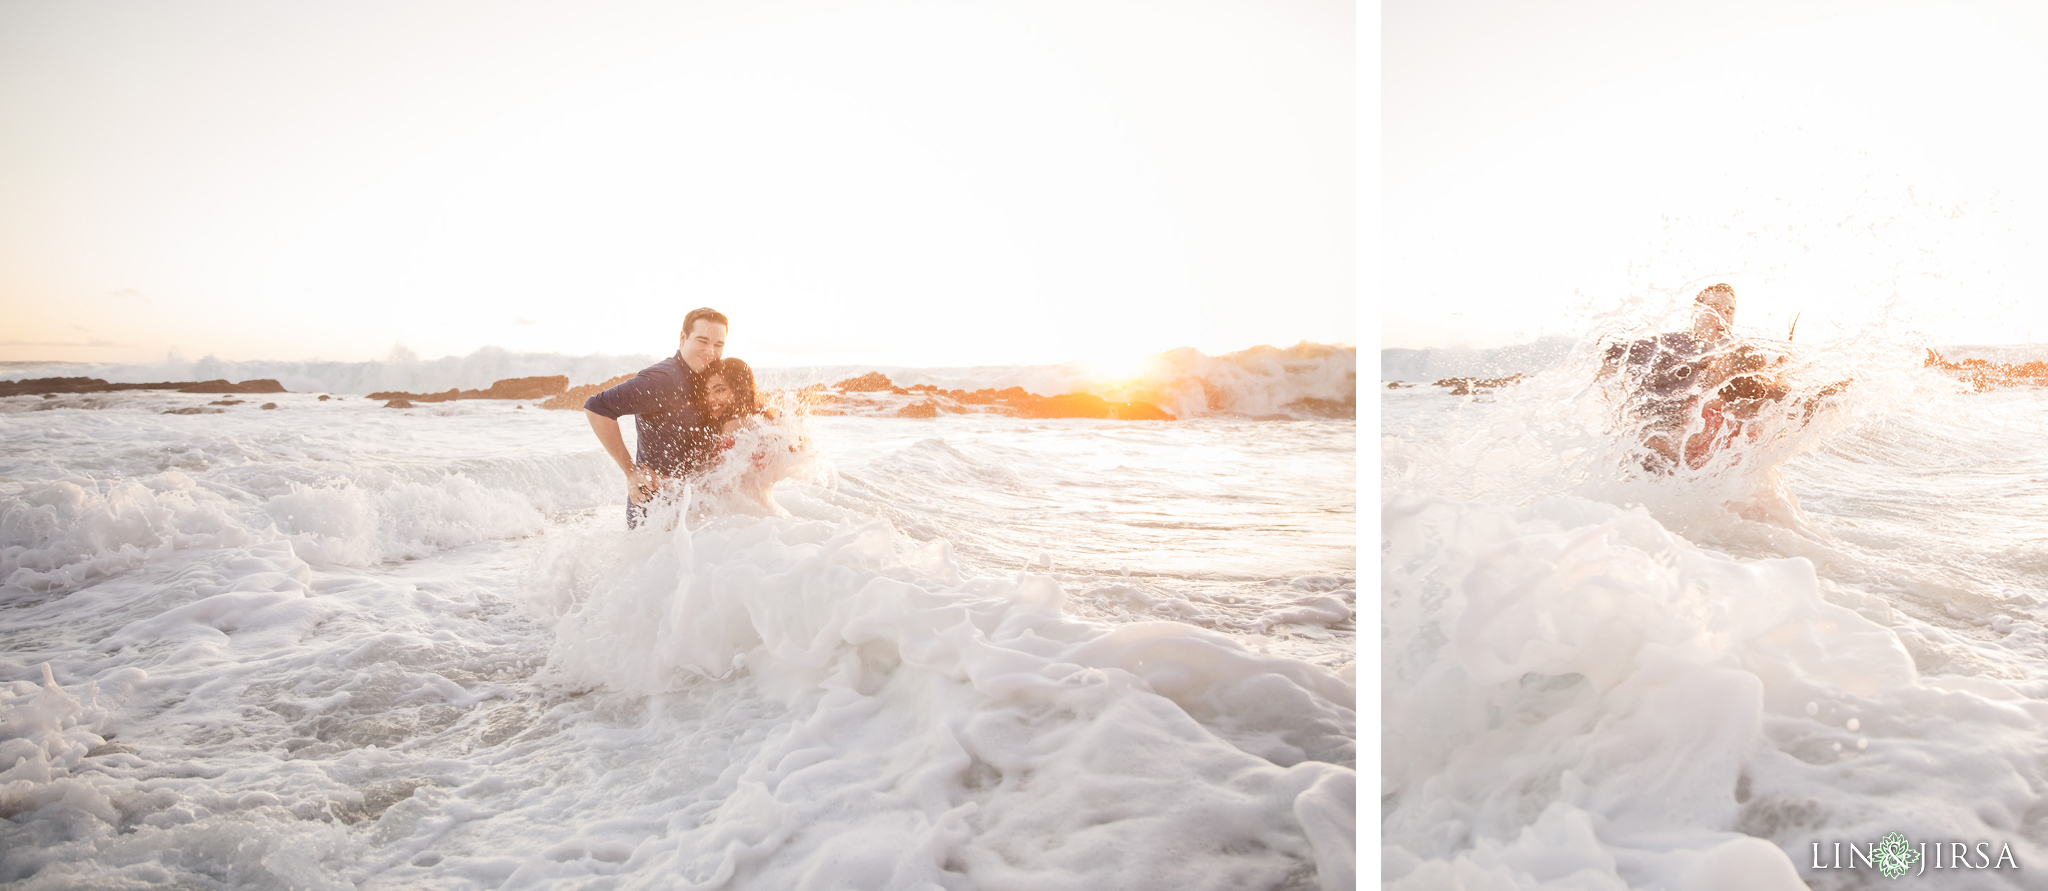 13 Victoria Beach Wave Splash Engagement Photography